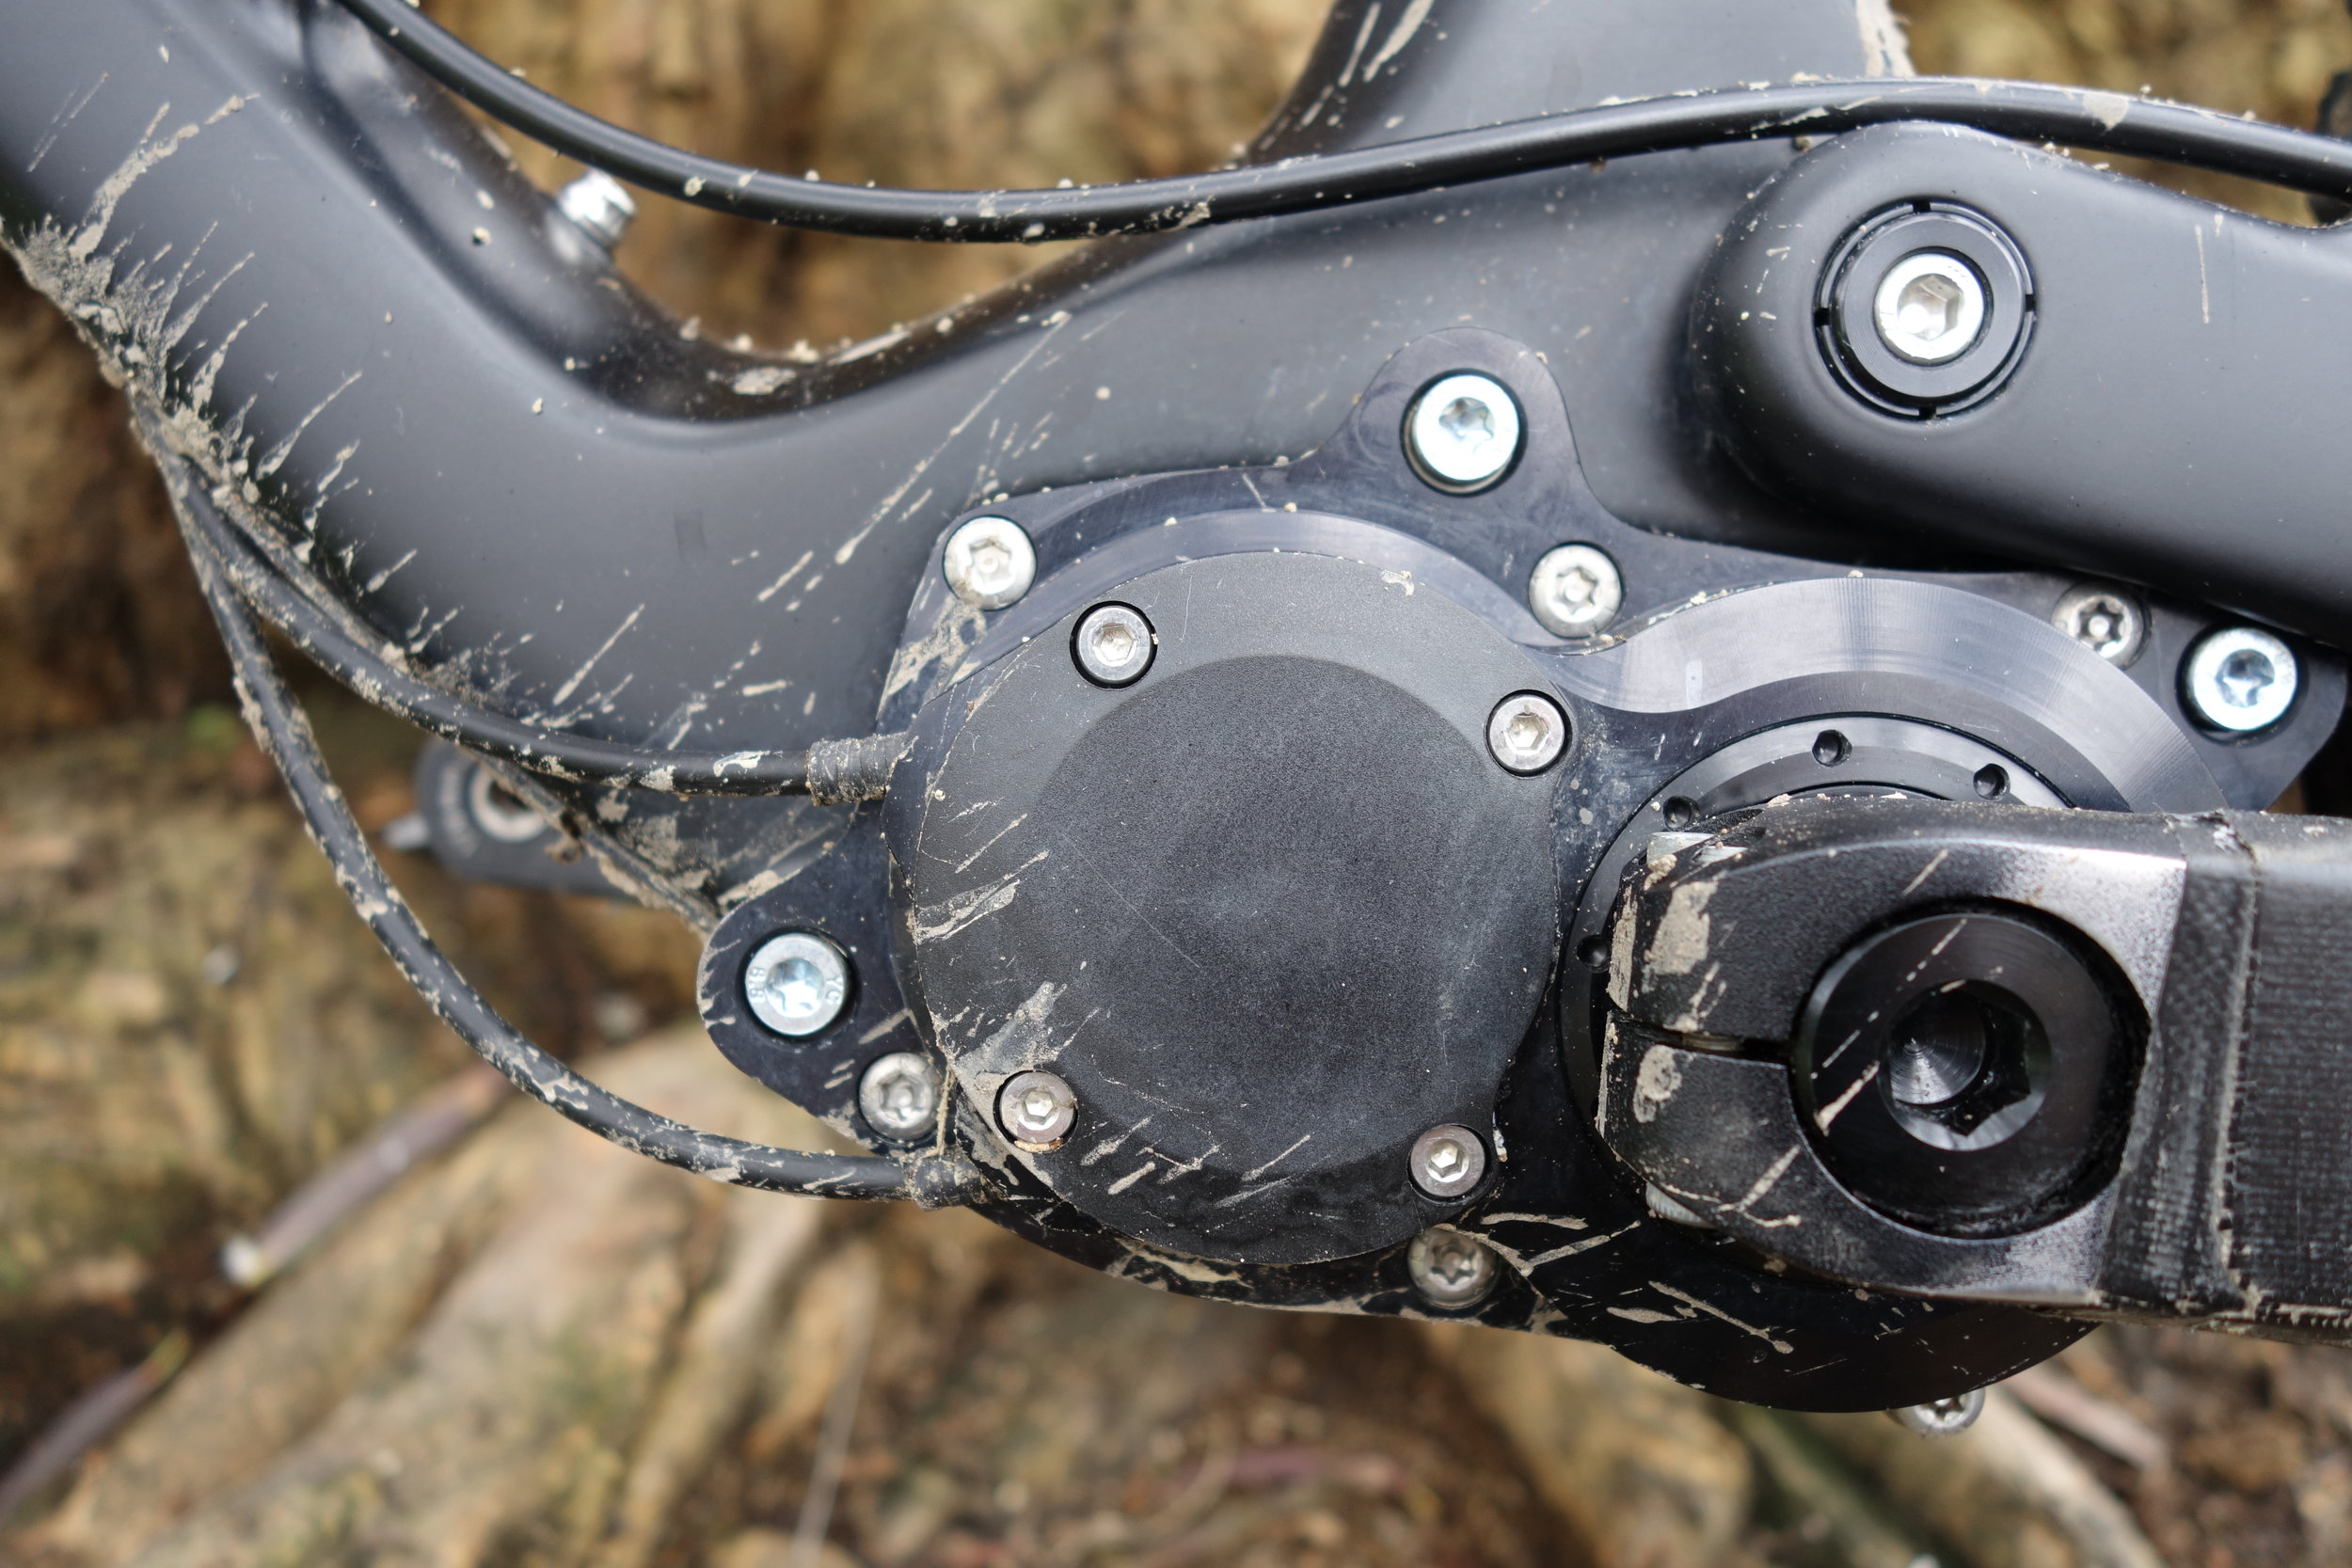 All the gearbox weight is around the bottom bracket area which is the ideal place to keep the handling neutral